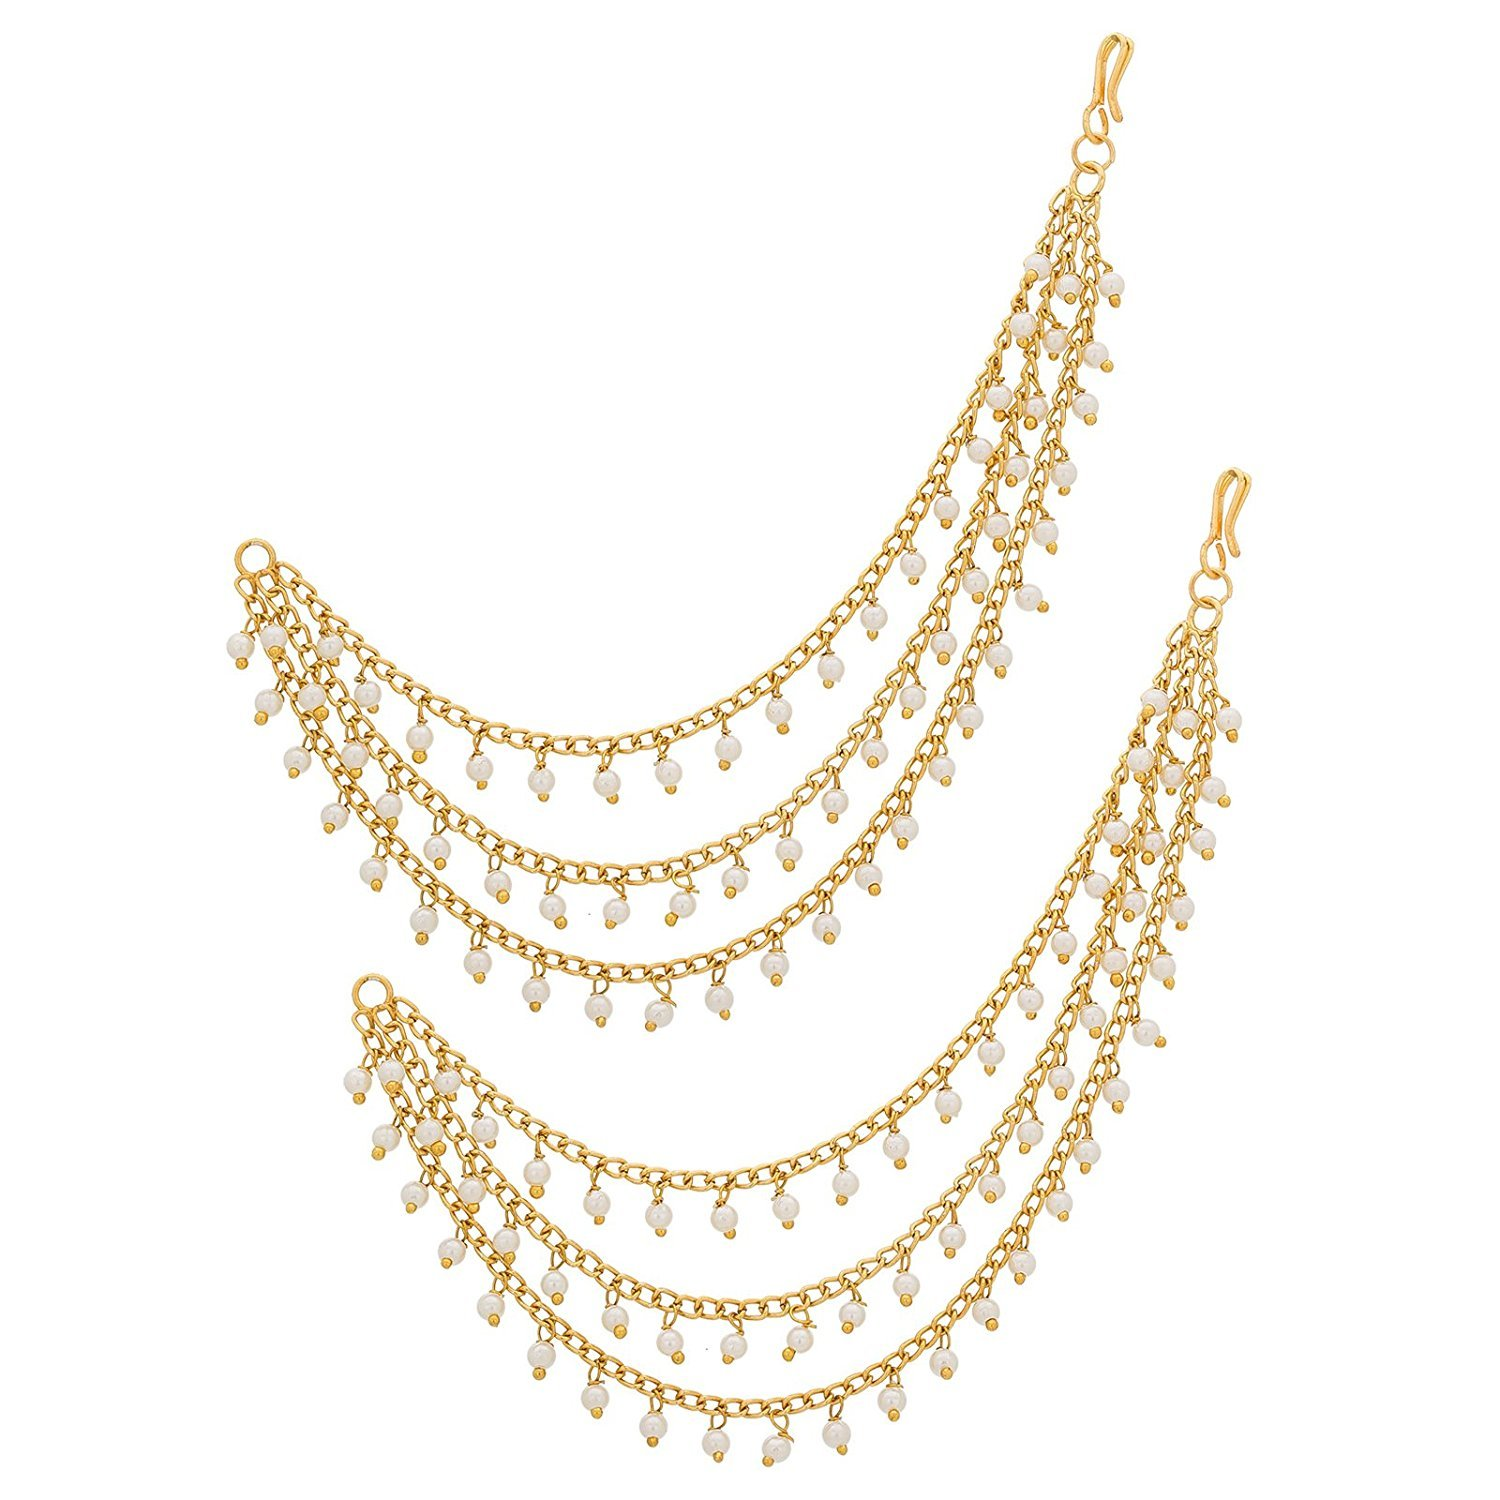 Karatcart Fashion Jewellery GoldPlated Multi-Layered Long